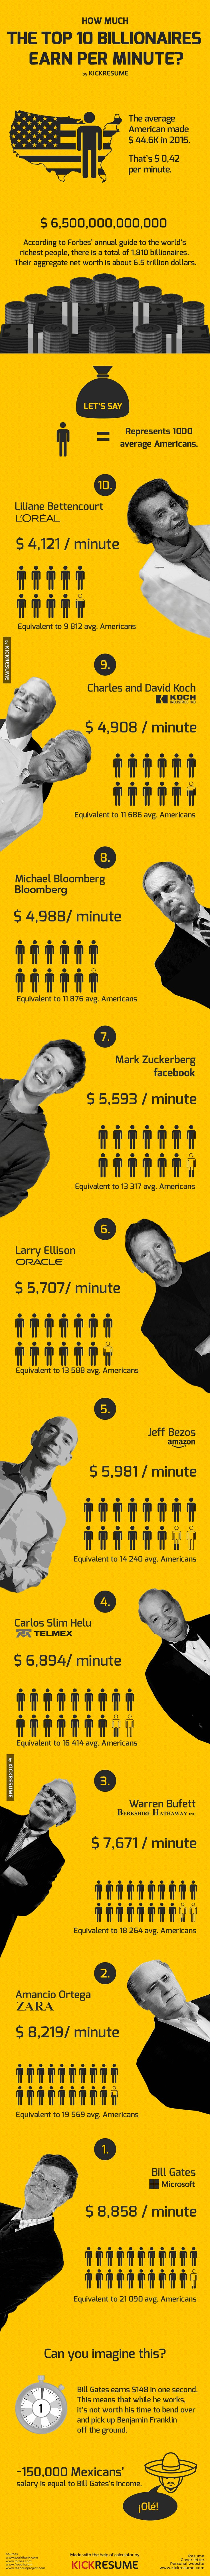 patient care technician cover letter%0A How Much the Top    Billionaires Earn per Minute   infographic  by www